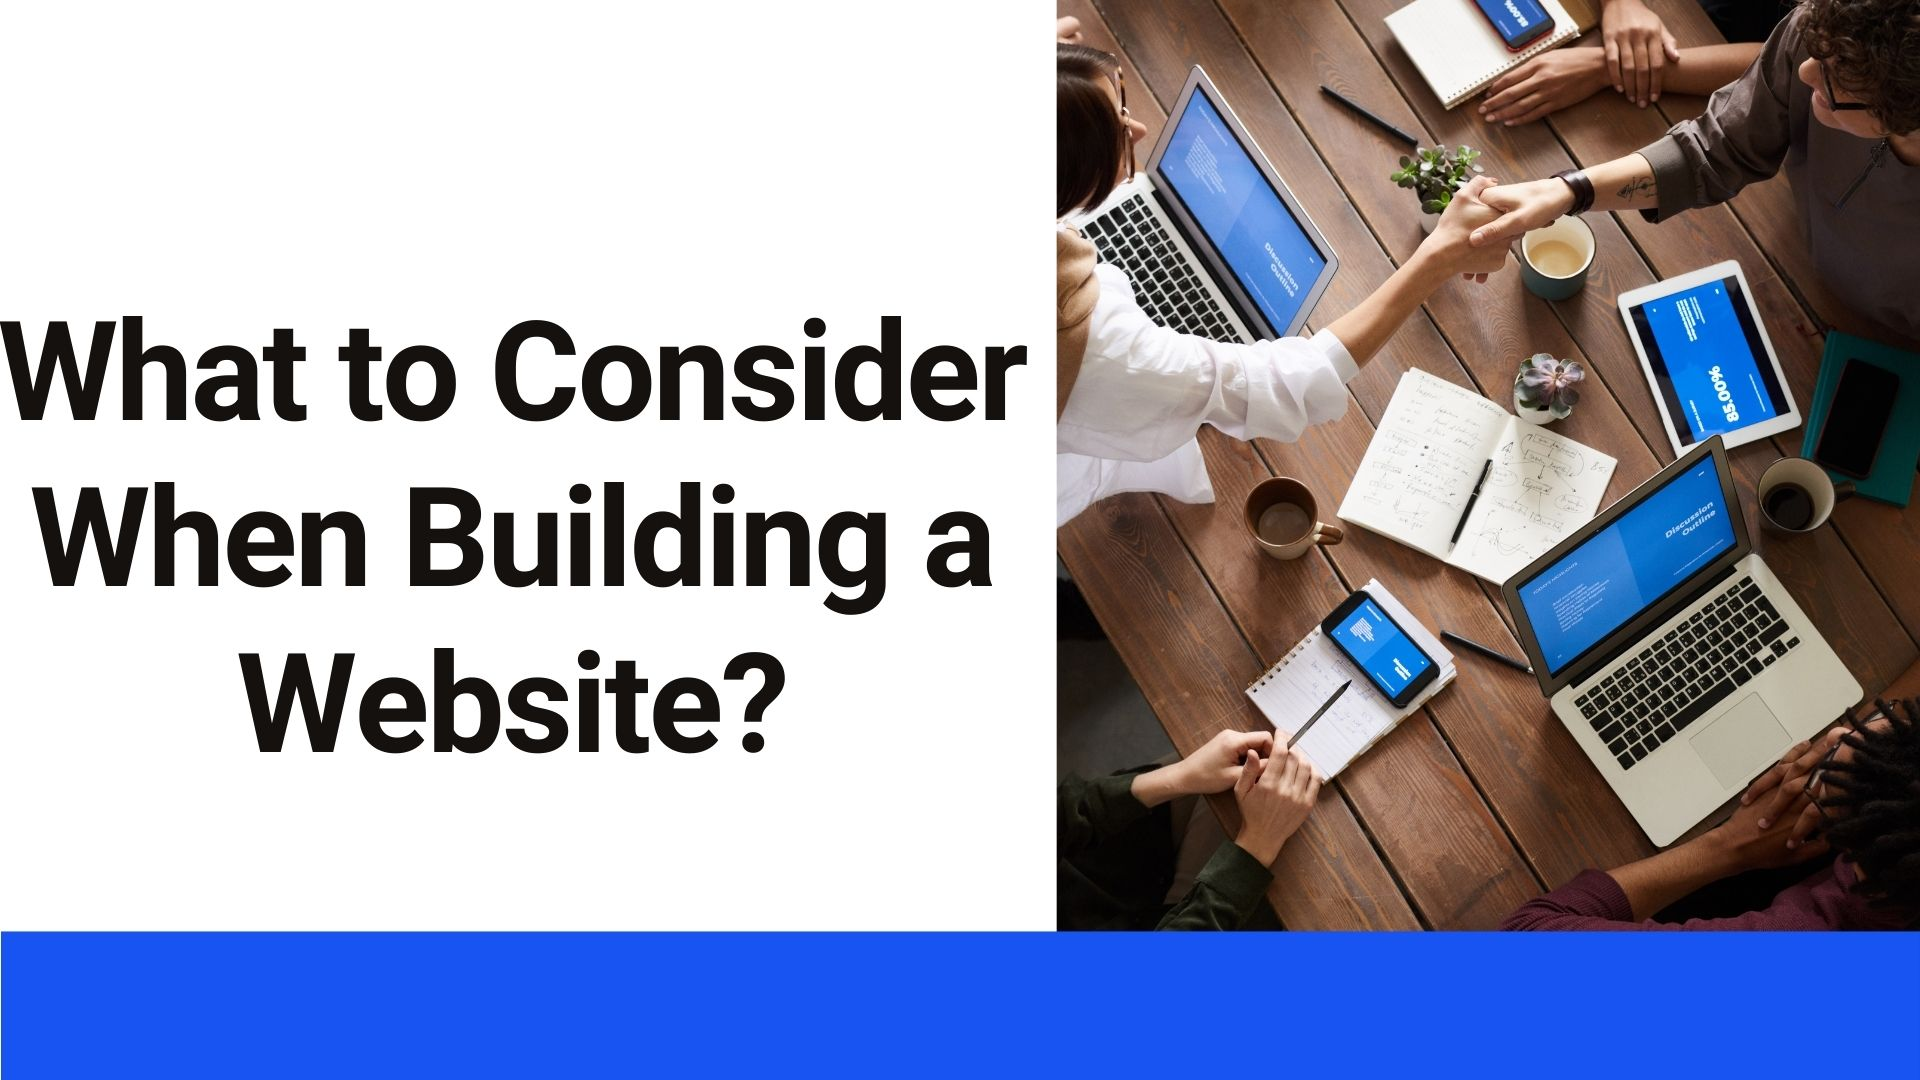 What to Consider When Building a Website (1)